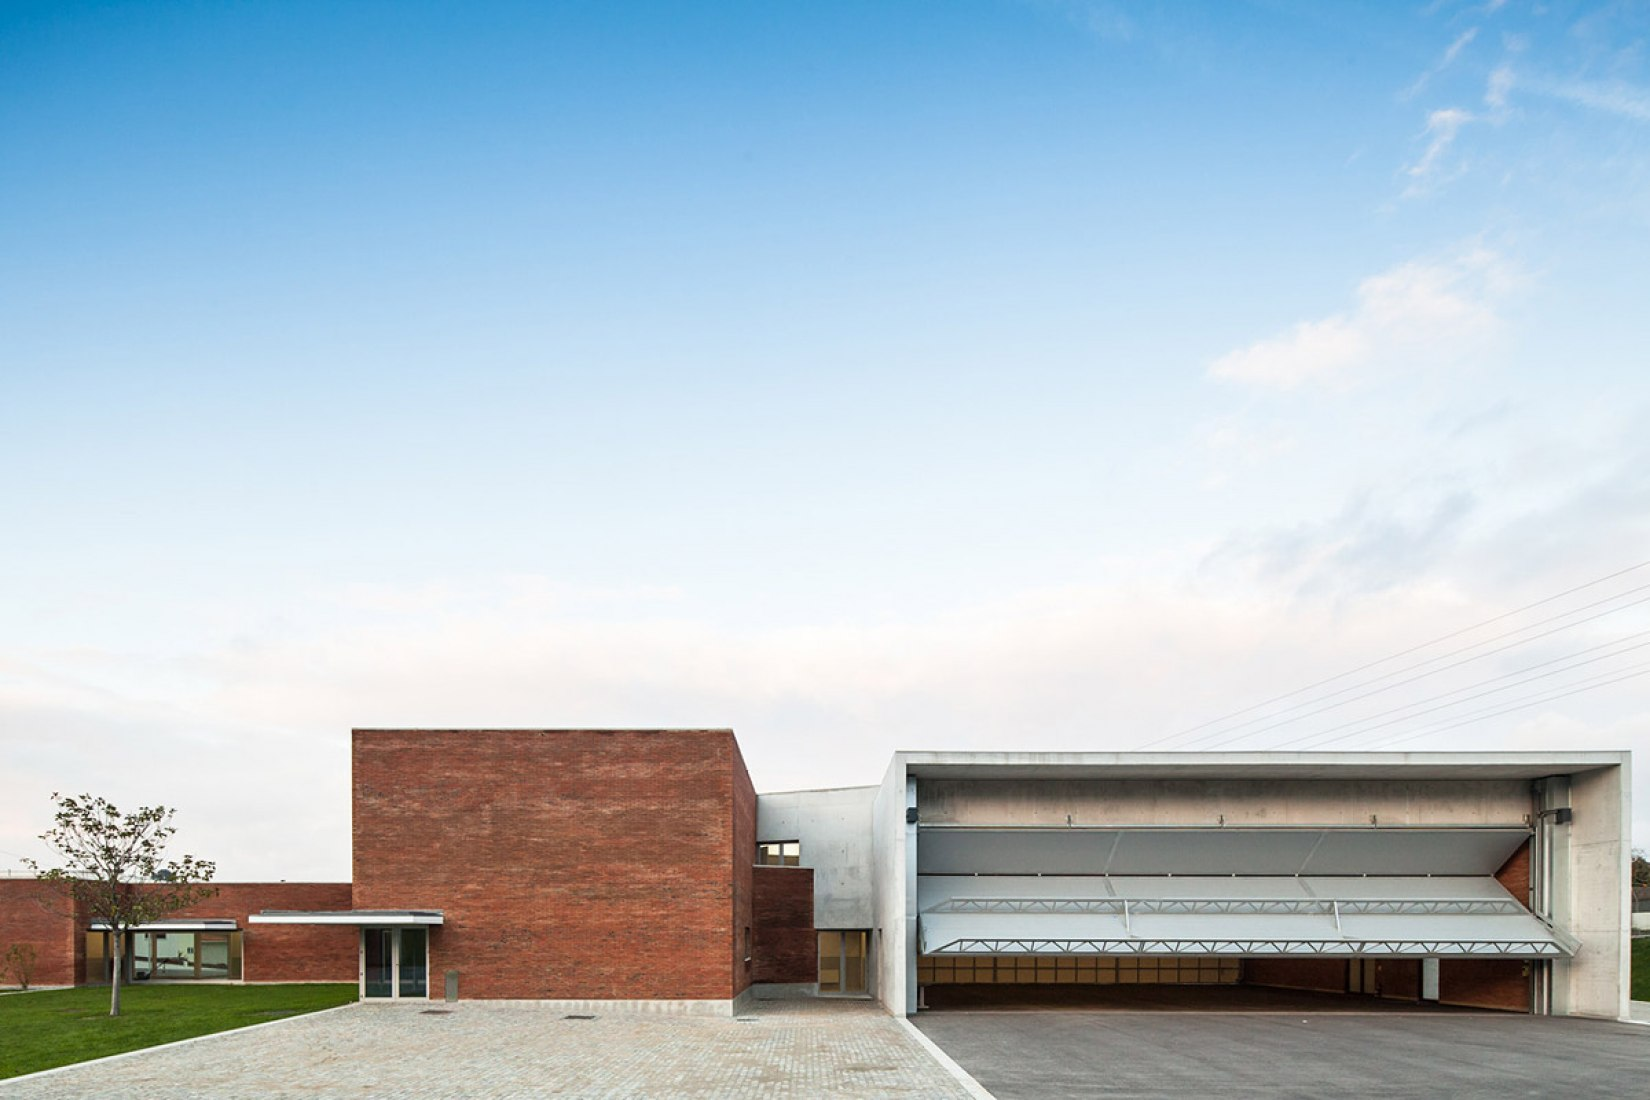 Outside vison. Santo Tirso Fire Station by Álvaro Siza Veira. Photography © Joao Morgado.